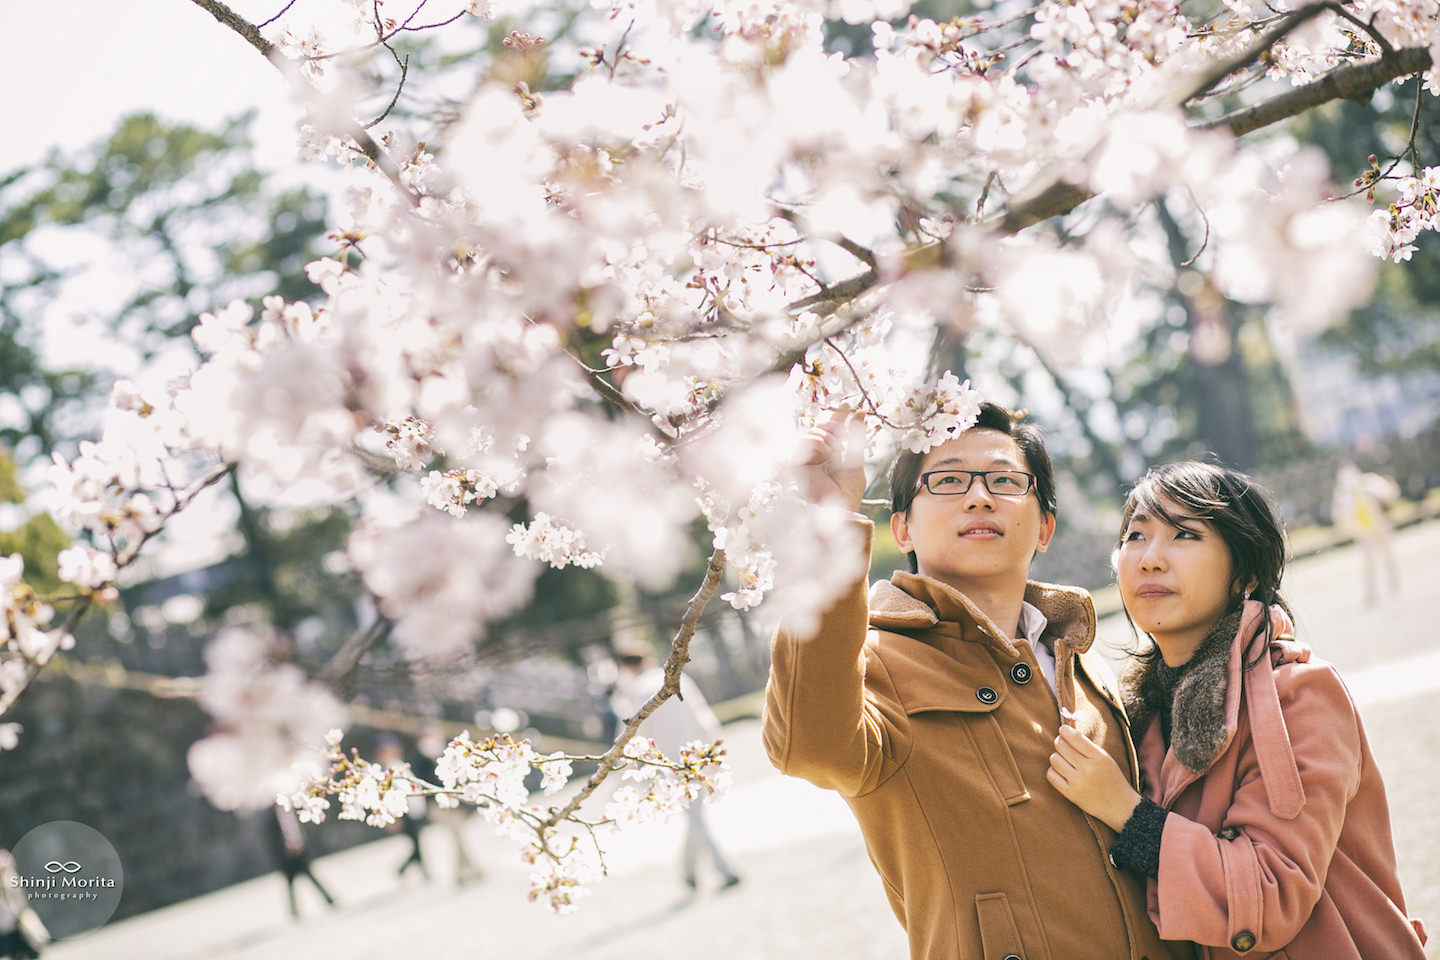 A couple enjoying cherry blossom in Hakone, Japan